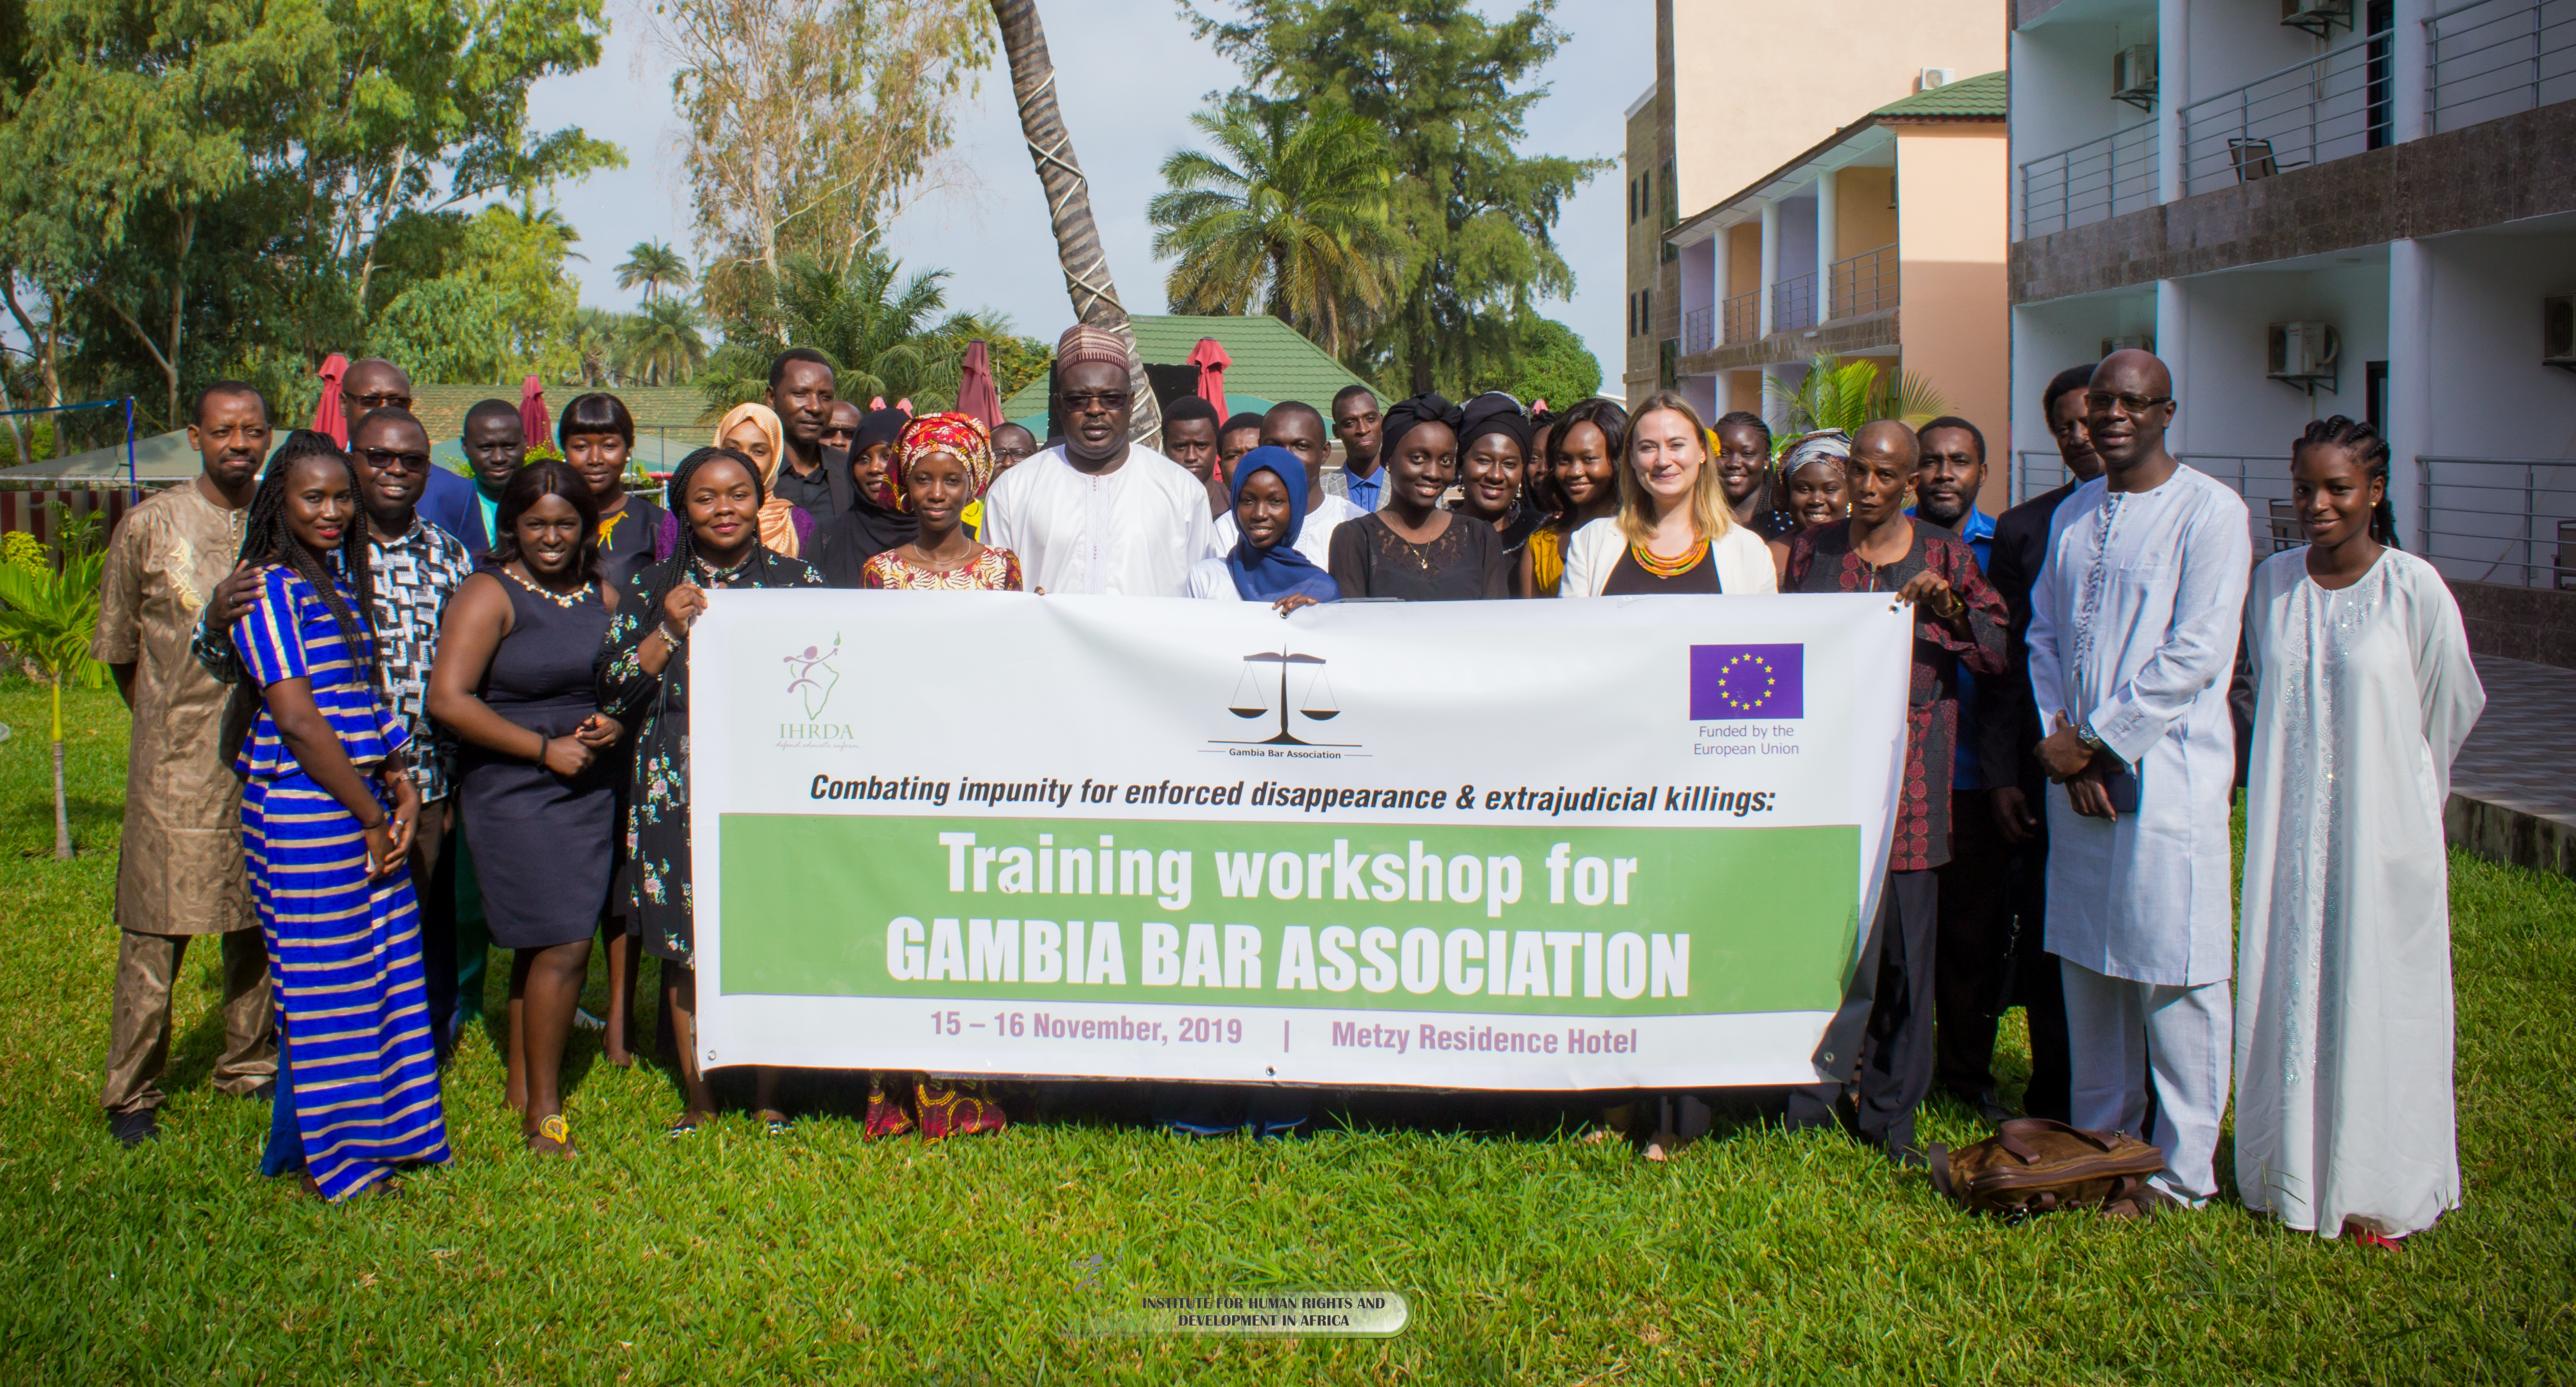 IHRDA, Gambia Bar train lawyers on combating impunity for enforced disappearance, extrajudicial killings